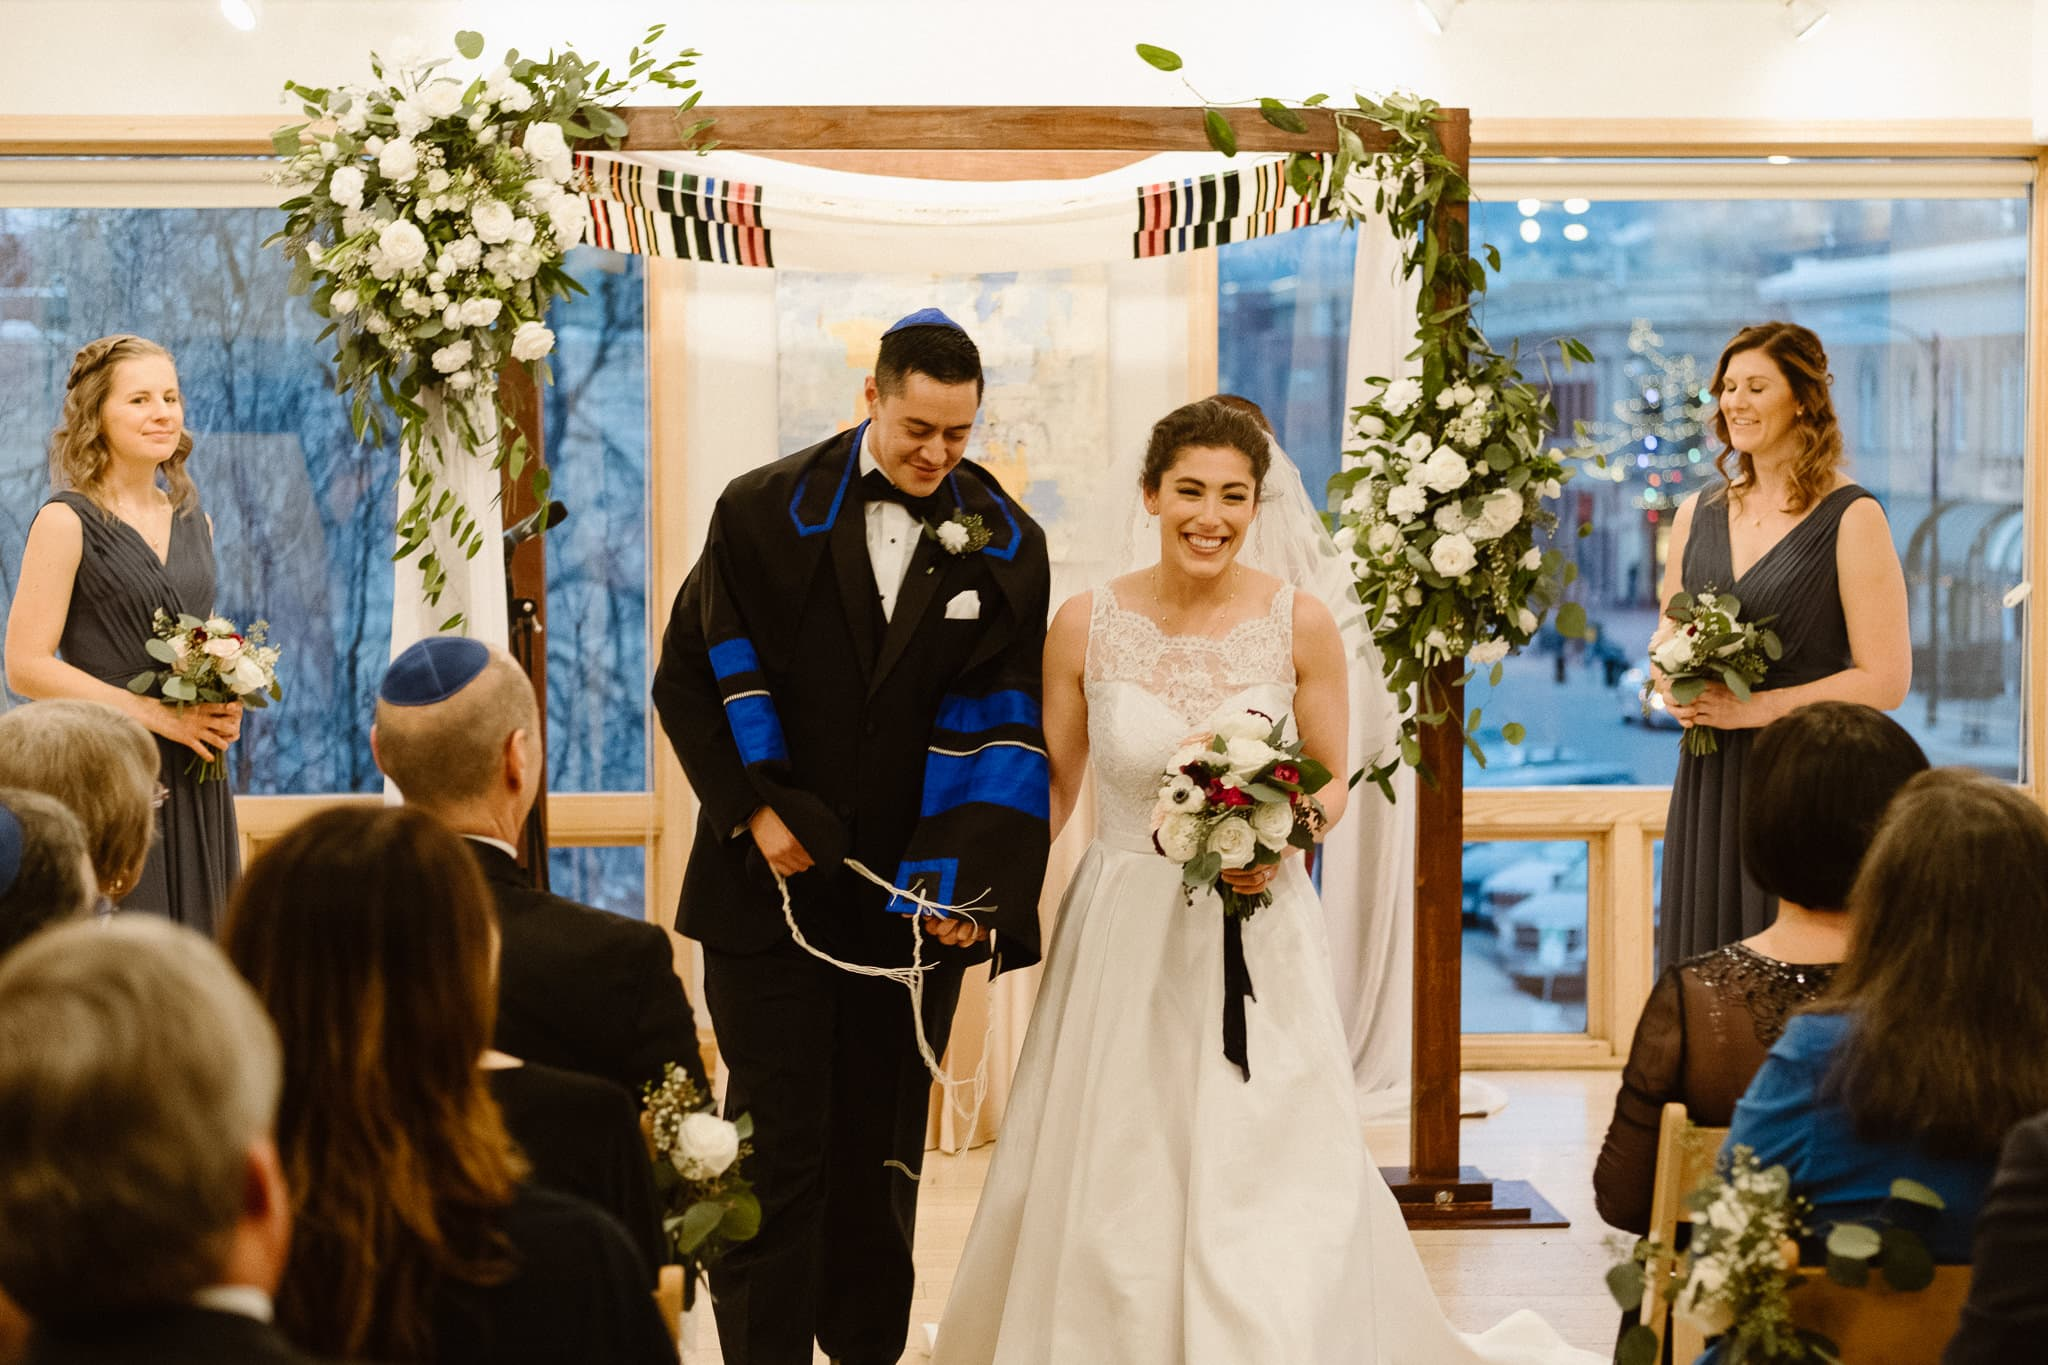 Rembrandt Yard wedding photographer, Boulder wedding photographer, Colorado Jewish wedding ceremony, bride and groom walking down aisle together